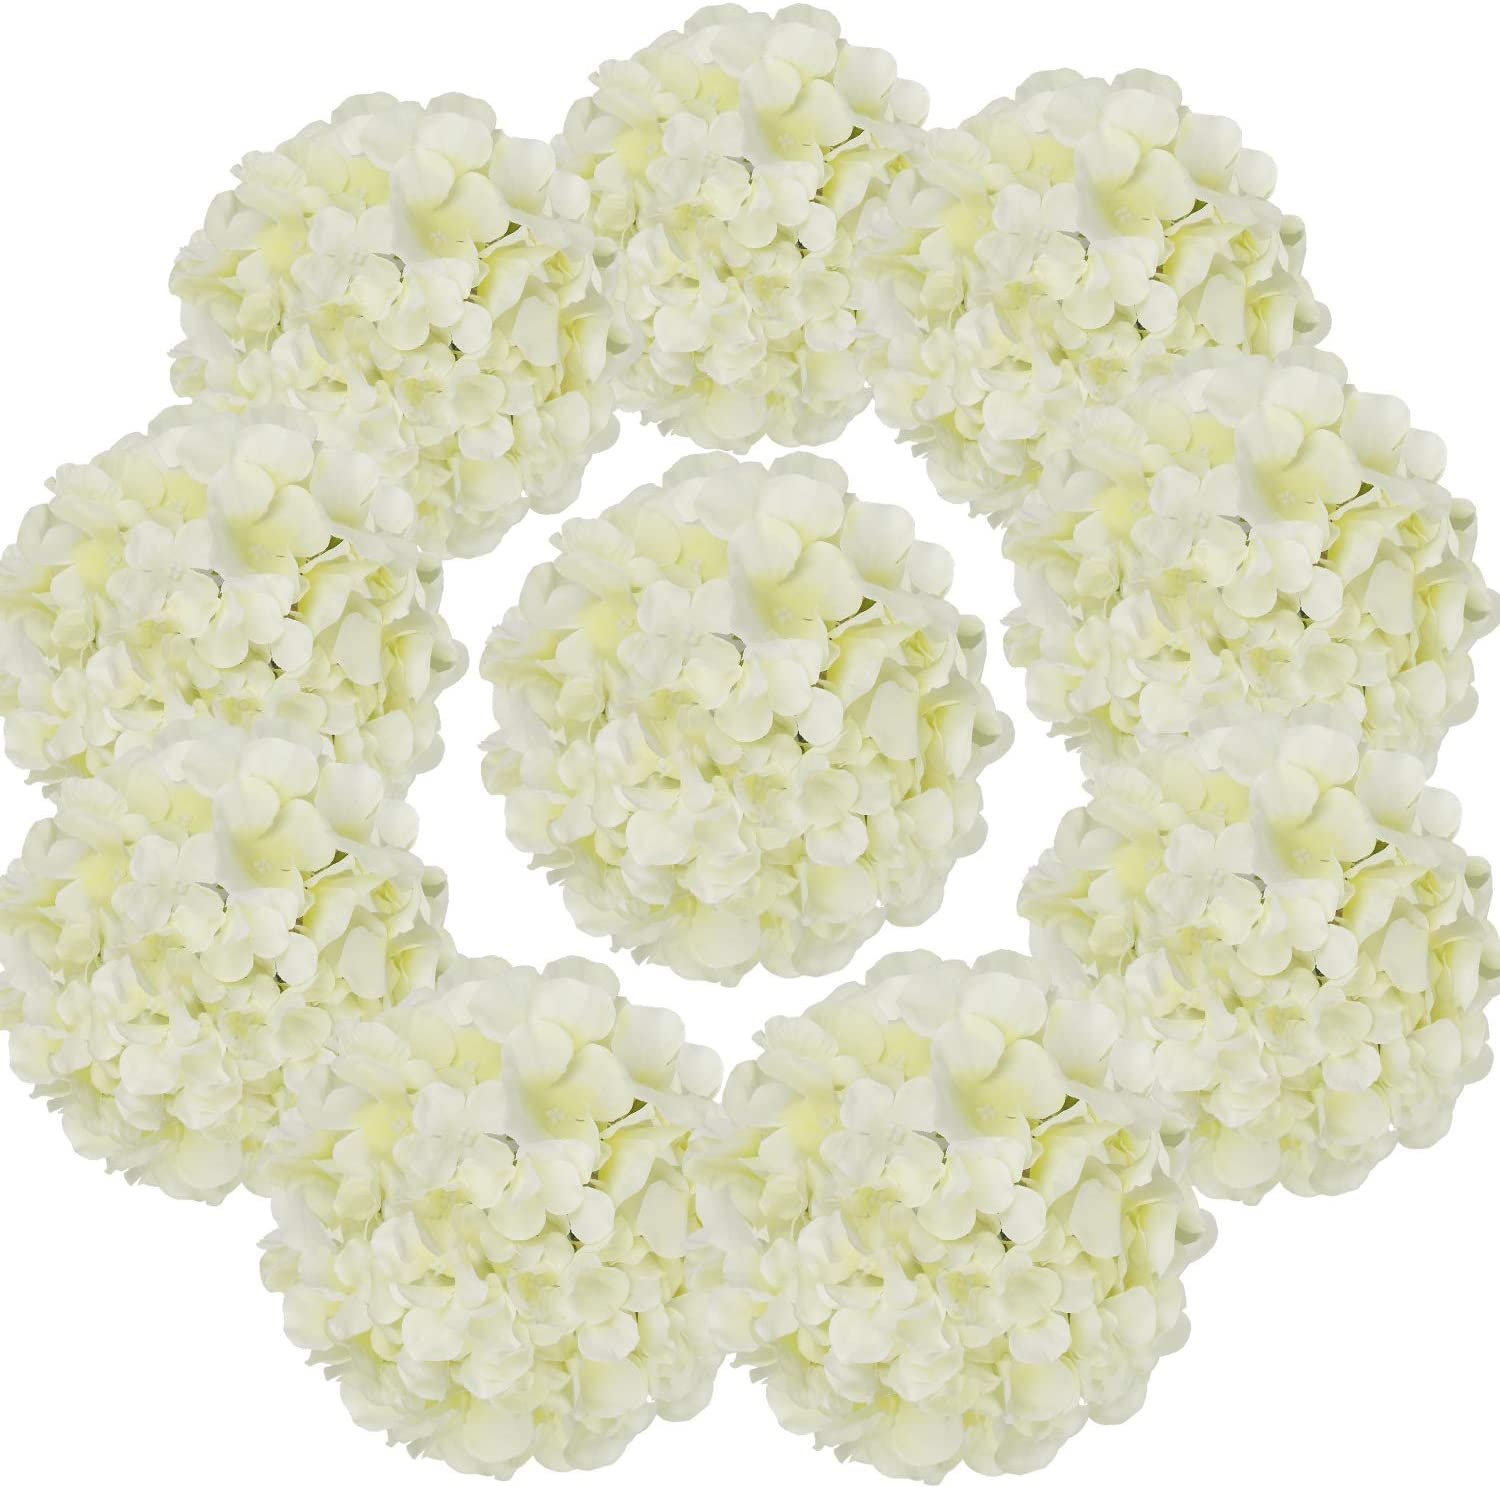 Flojery excellence Silk Hydrangea Heads Artificial Stems Flowers with 25% OFF